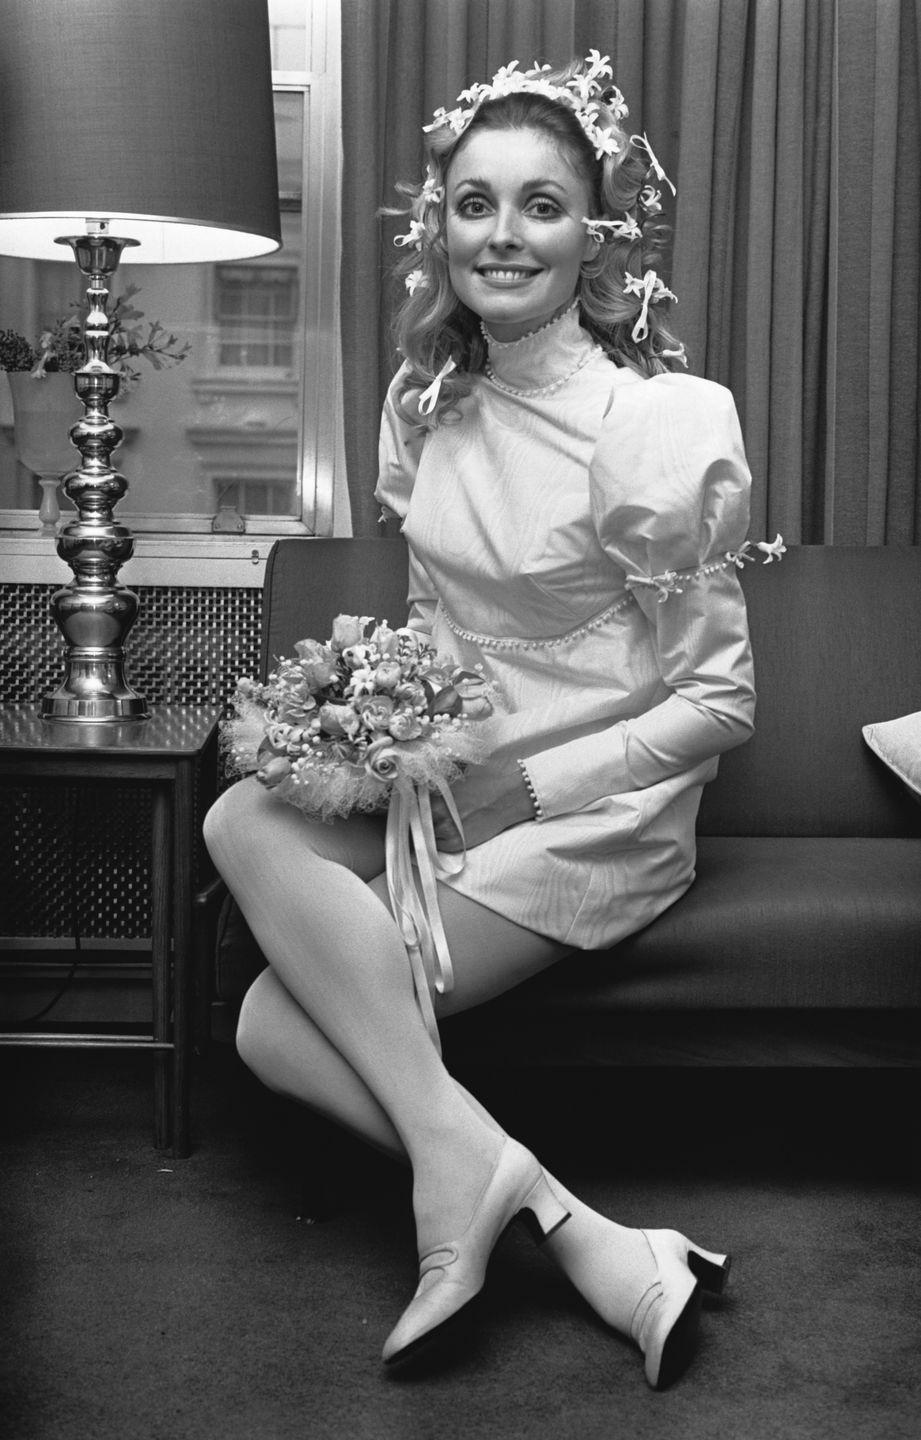 """<p>Tate's wedding look—a long sleeve mini dress and flowers scattered in her hair—instantly became iconic. The dress sold <a href=""""https://www.cnn.com/style/article/sharon-tate-wedding-dress-scli-intl/index.html"""" rel=""""nofollow noopener"""" target=""""_blank"""" data-ylk=""""slk:at an auction last year"""" class=""""link rapid-noclick-resp"""">at an auction last year</a> for $56,000 to an anonymous buyer. </p>"""